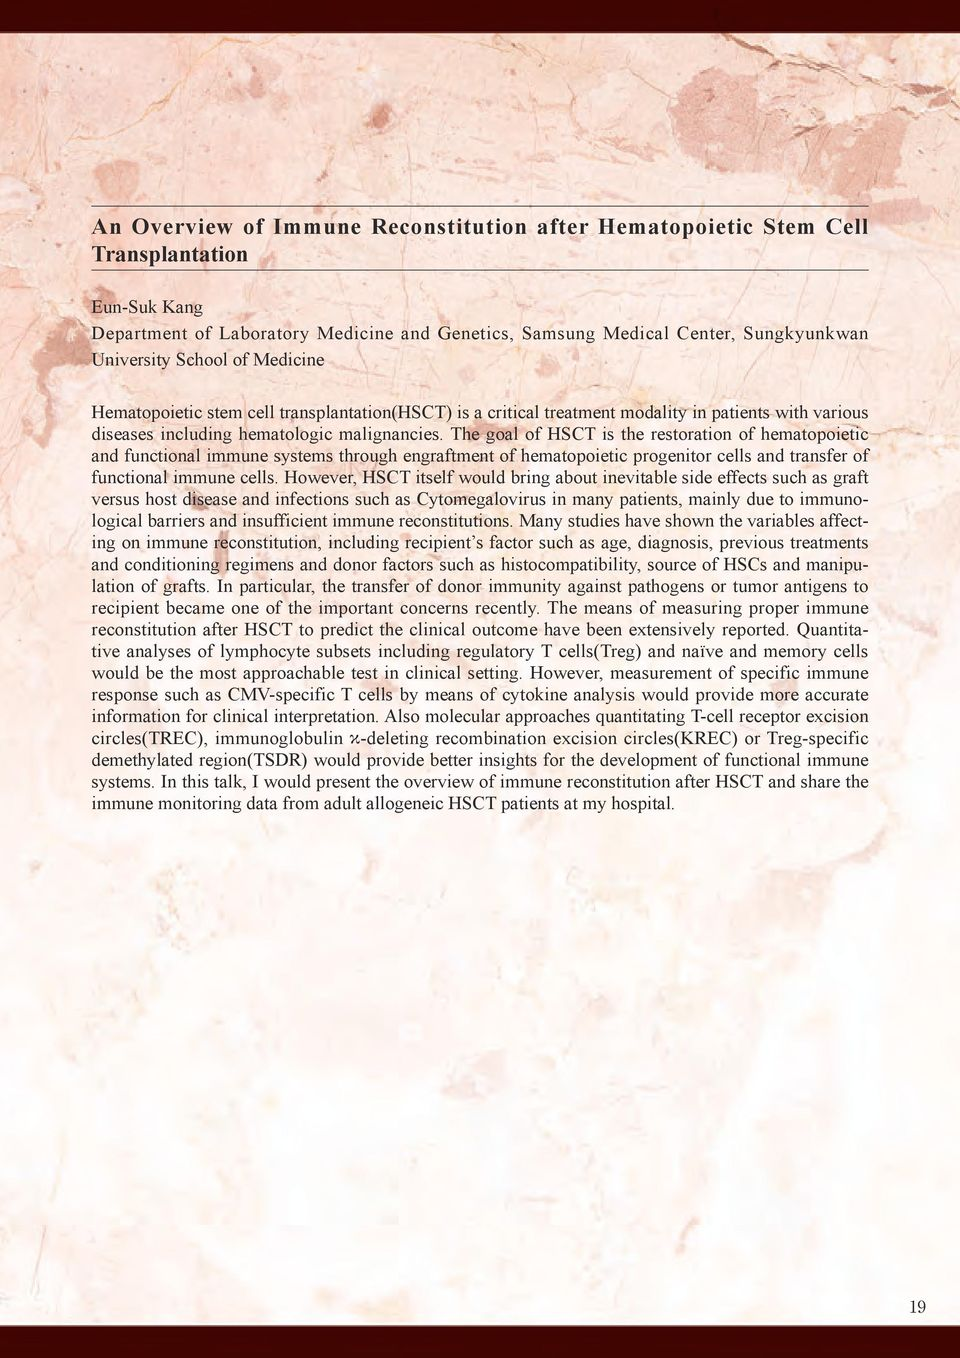 The goal of HSCT is the restoration of hematopoietic and functional immune systems through engraftment of hematopoietic progenitor cells and transfer of functional immune cells.